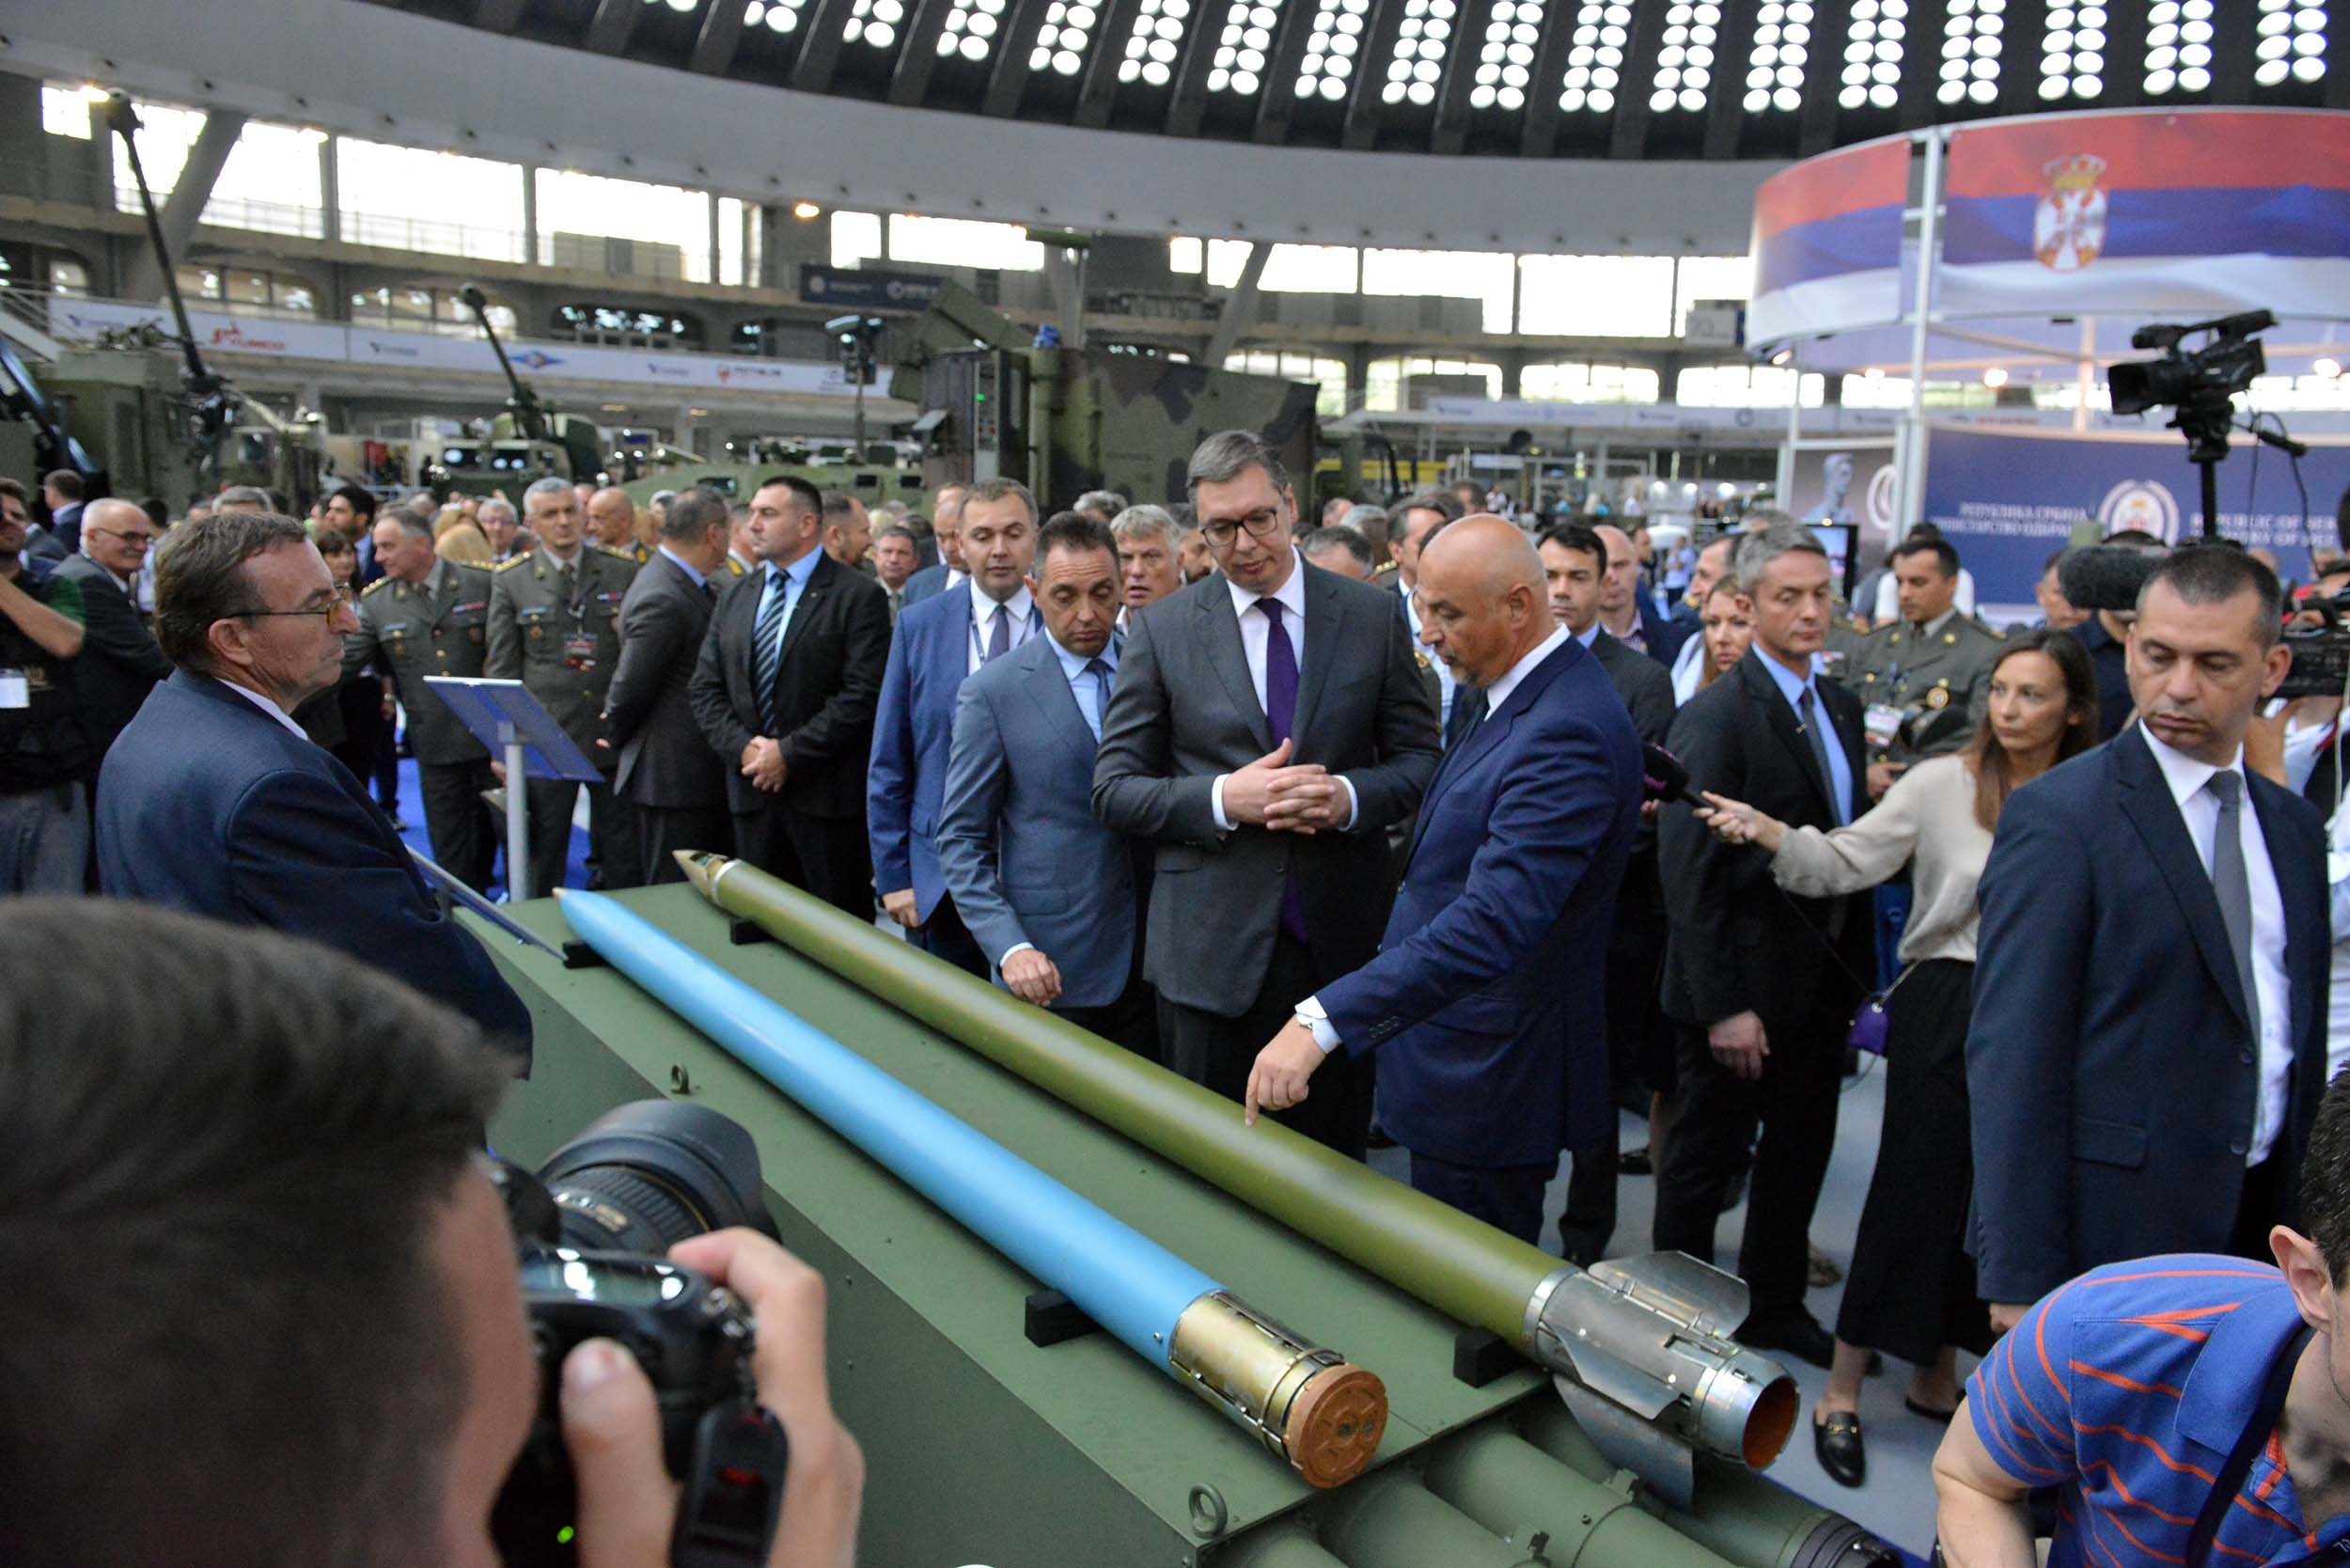 Partner 2019 Arms and Military Equipment Fair opens